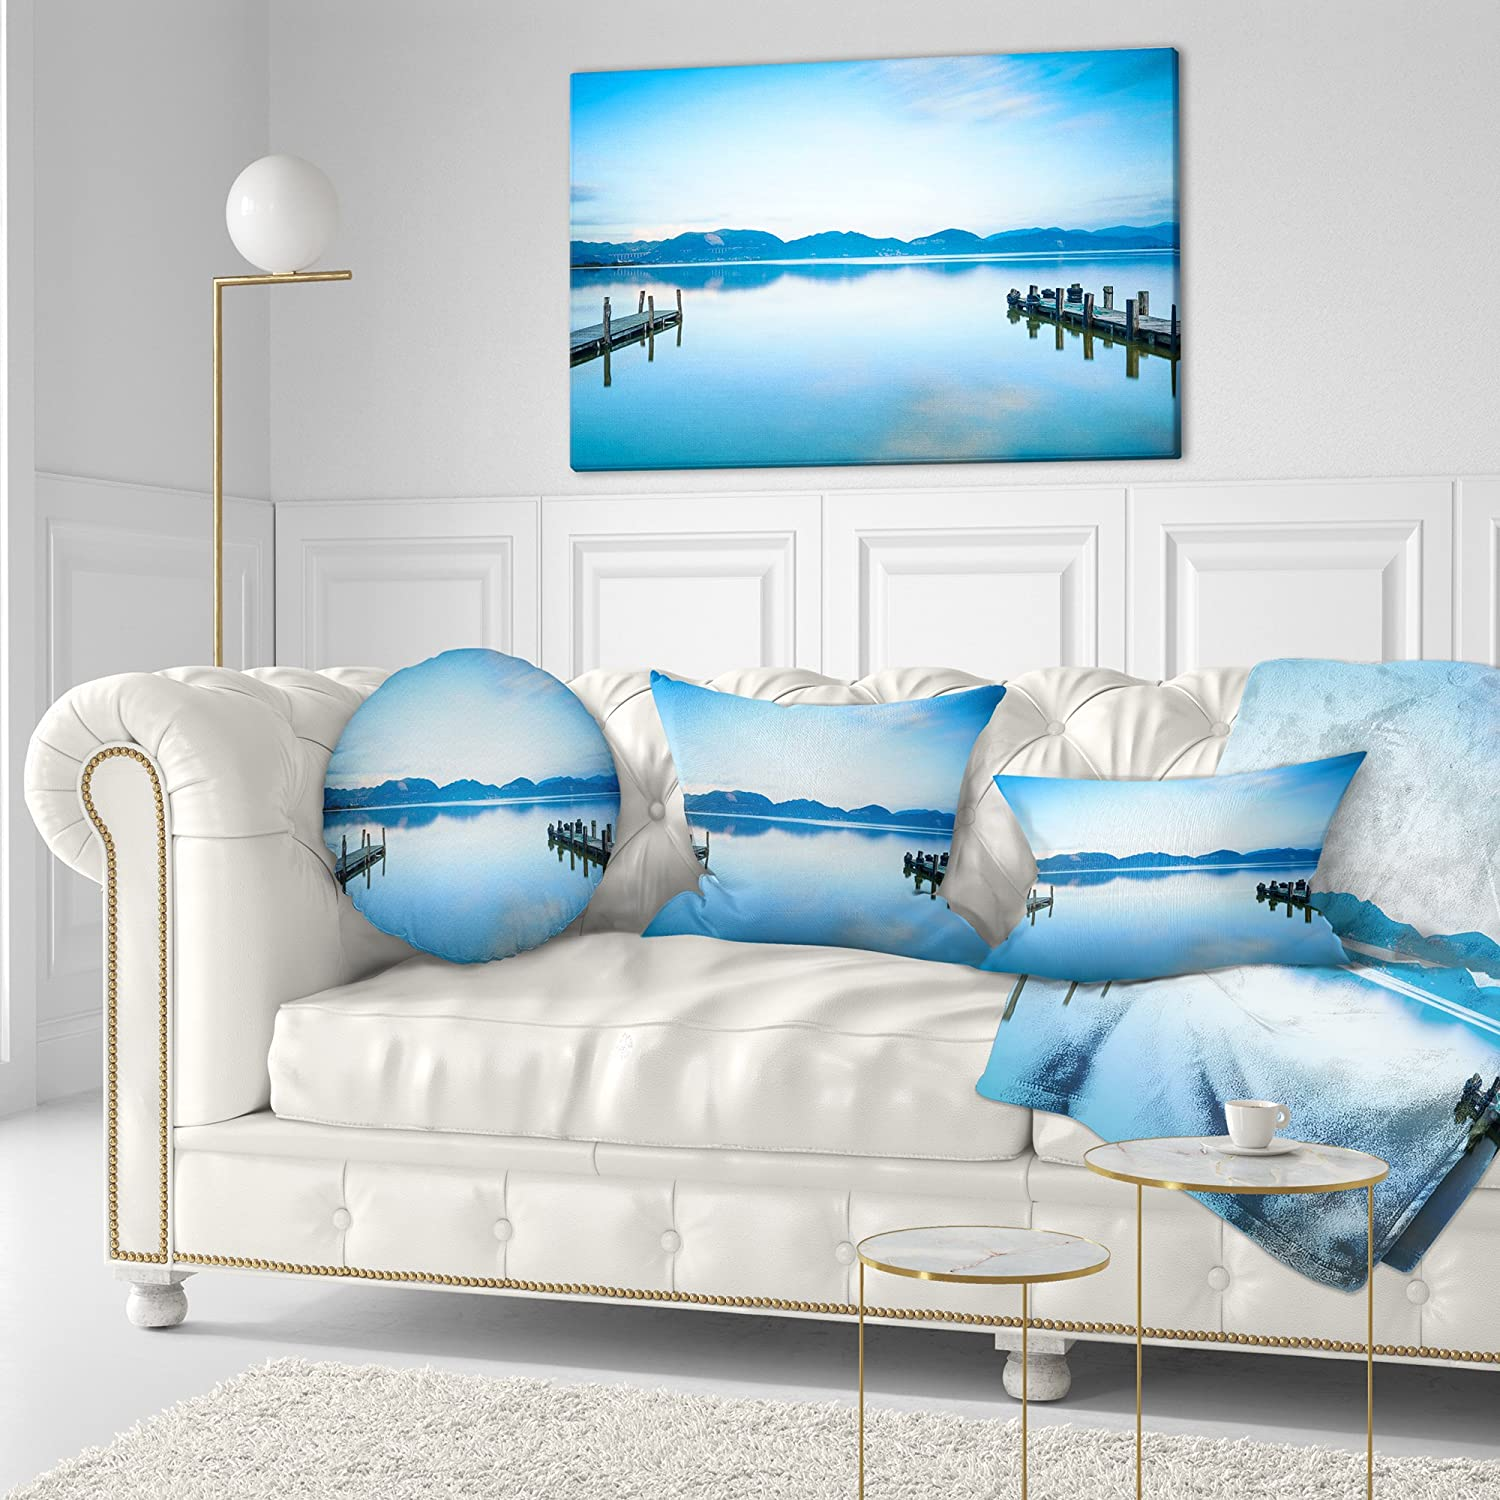 in x 20 in Sofa Throw Pillow 12 in Insert Printed On Both Side Designart CU8370-12-20 Two Wooden Piers in Blue Sea Seascape Lumbar Cushion Cover for Living Room